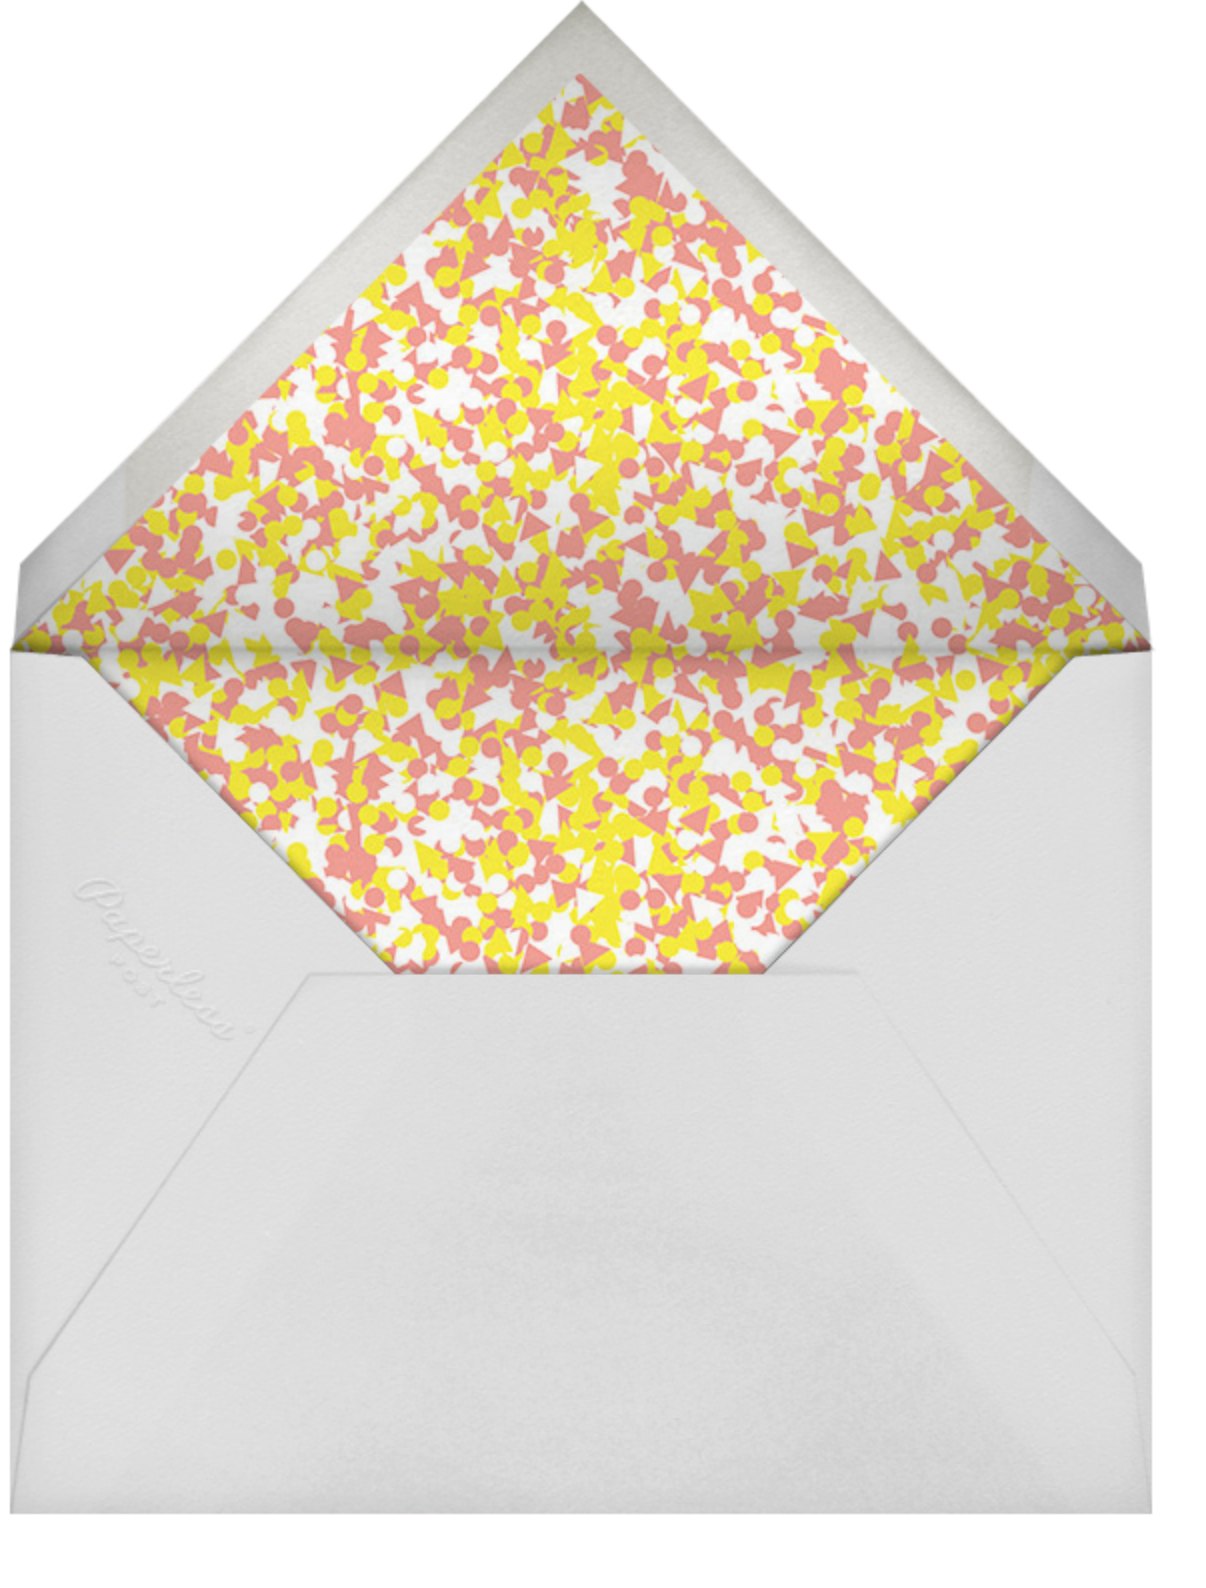 The Quiet Game - Paperless Post - Adult birthday - envelope back